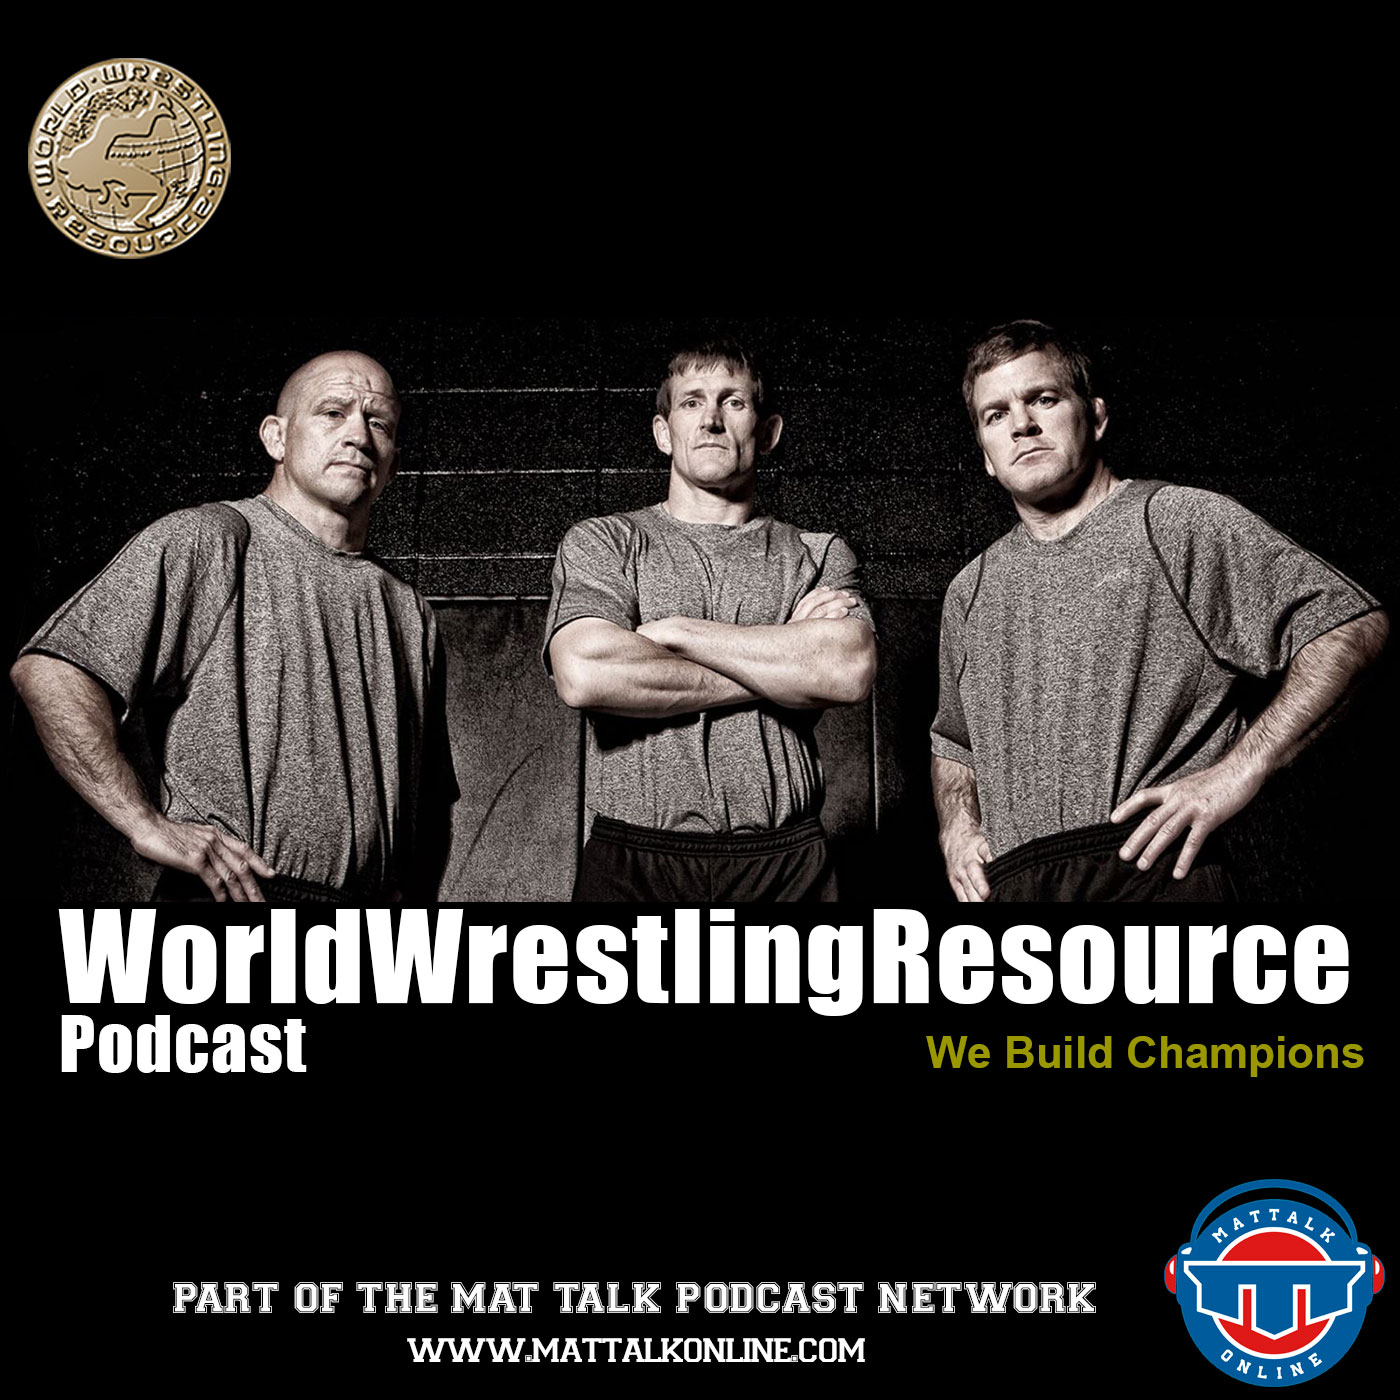 Artwork for WWR10: Iowa vs. Minnesota and the competition and changes in international wrestling